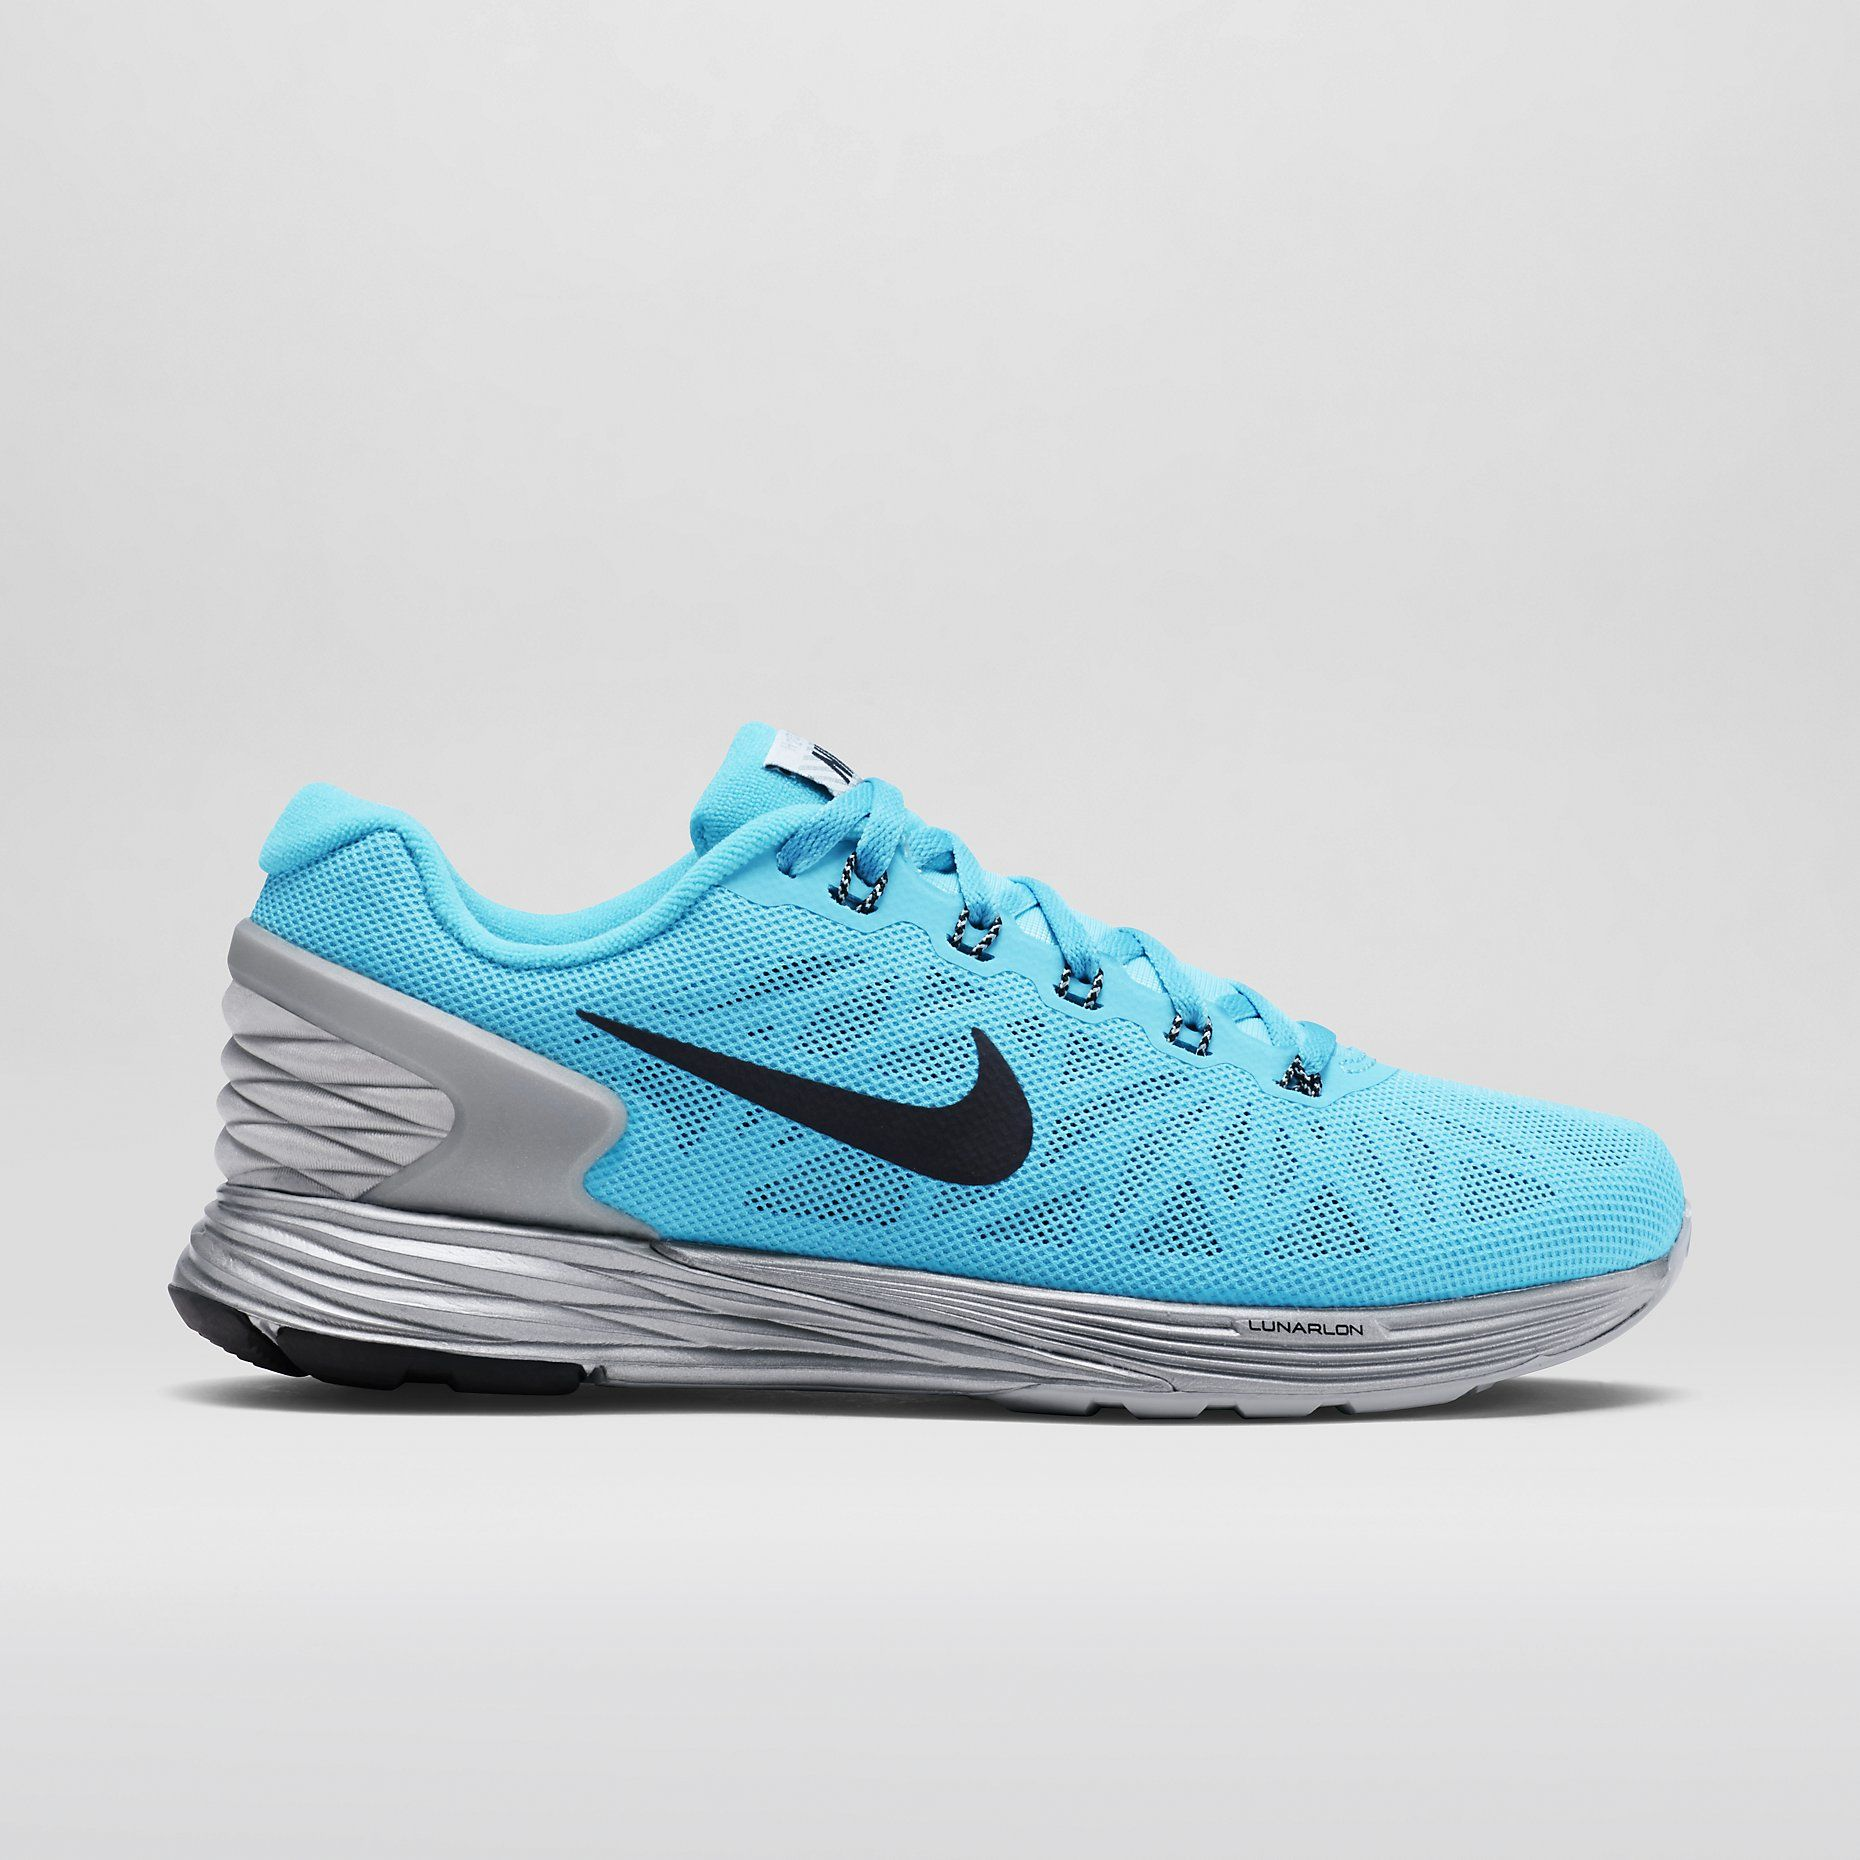 Nike LunarGlide 6 Flash Women's Running Shoe. Good for winter, waterproof  material a little